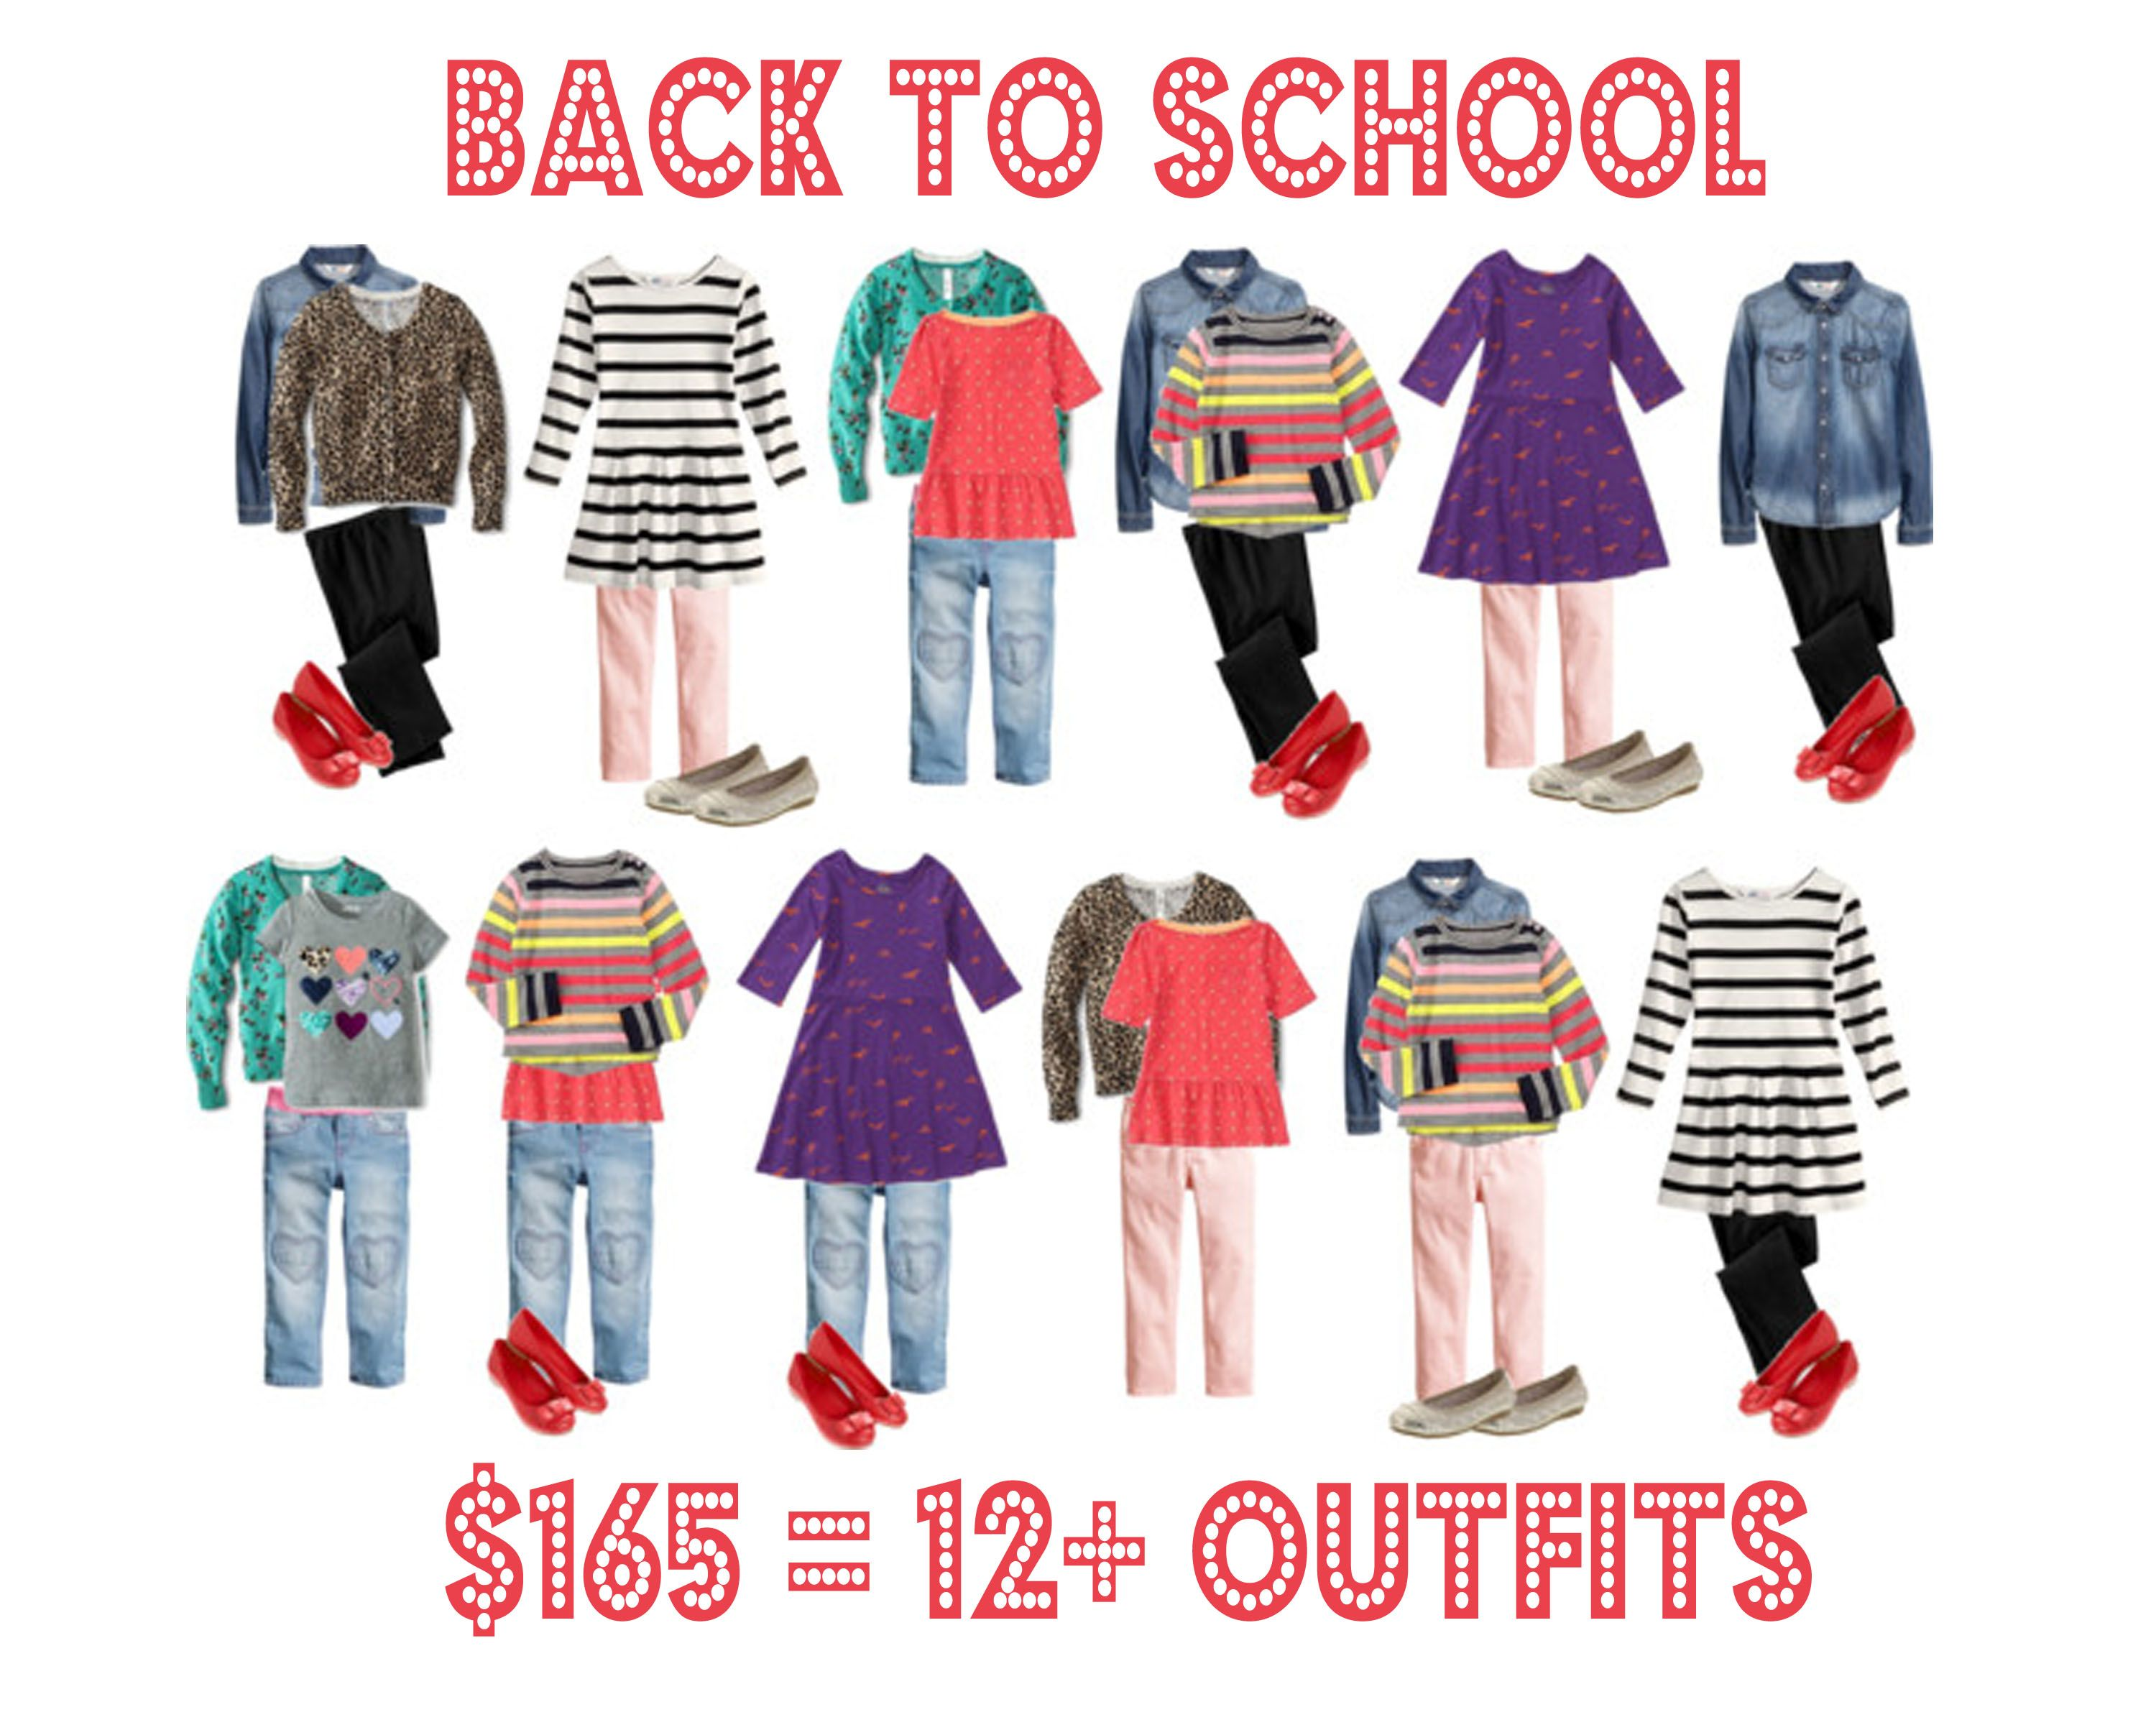 Back To School Wardrobe For Girls 12 Outfits For Less Than